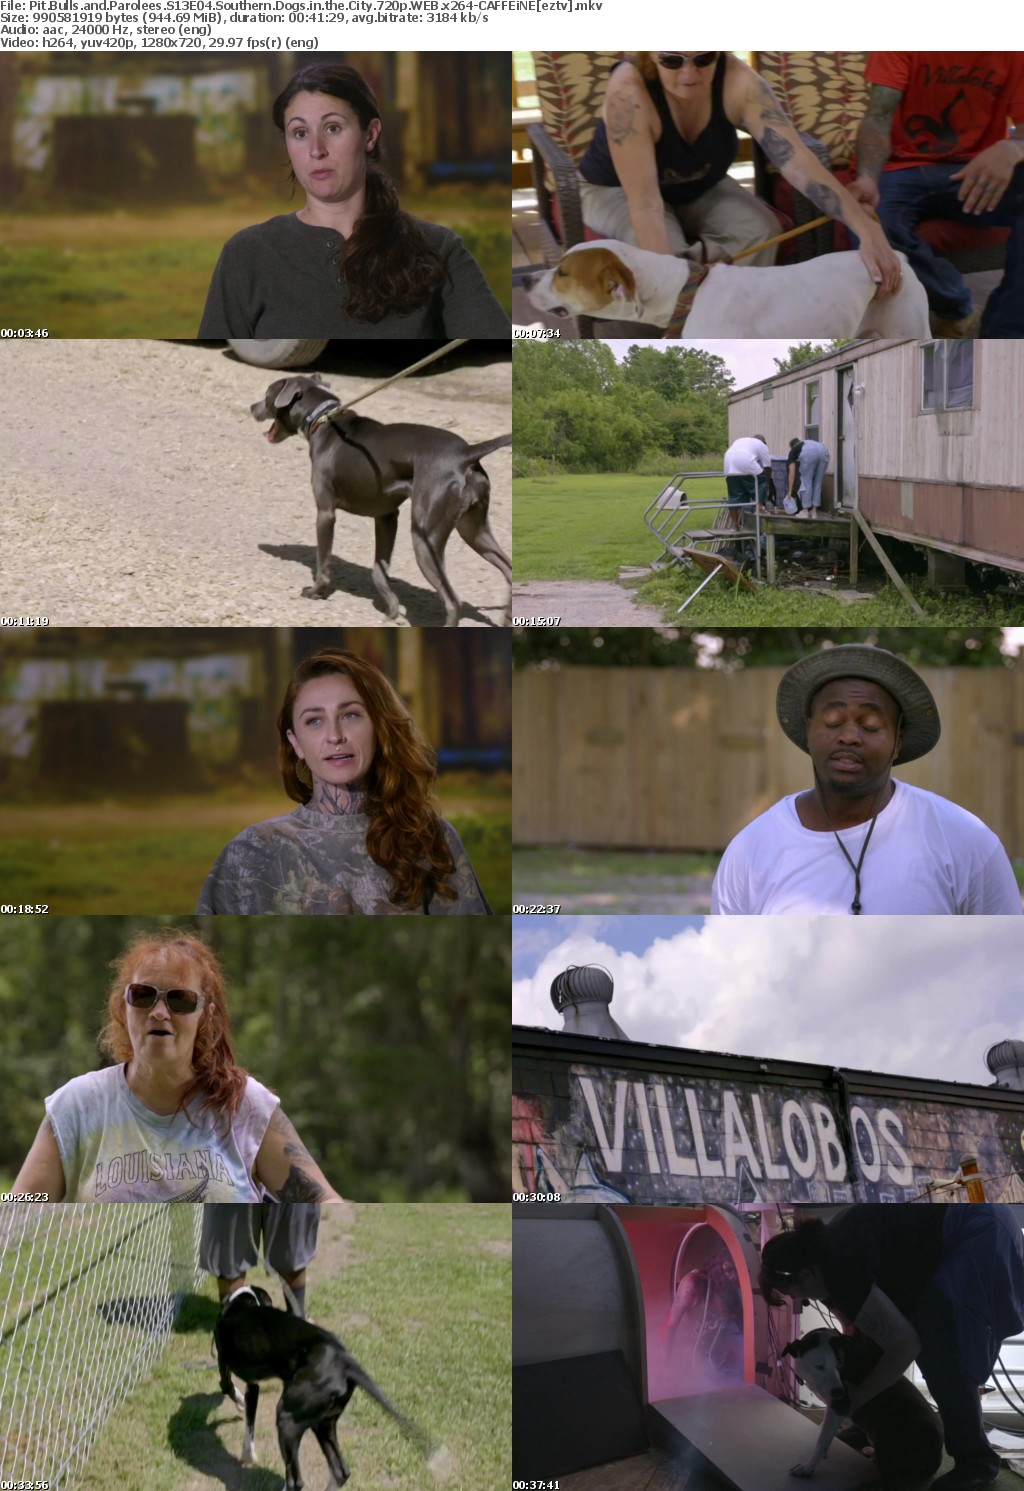 Pit Bulls and Parolees S13E04 Southern Dogs in the City 720p WEB x264-CAFFEiNE